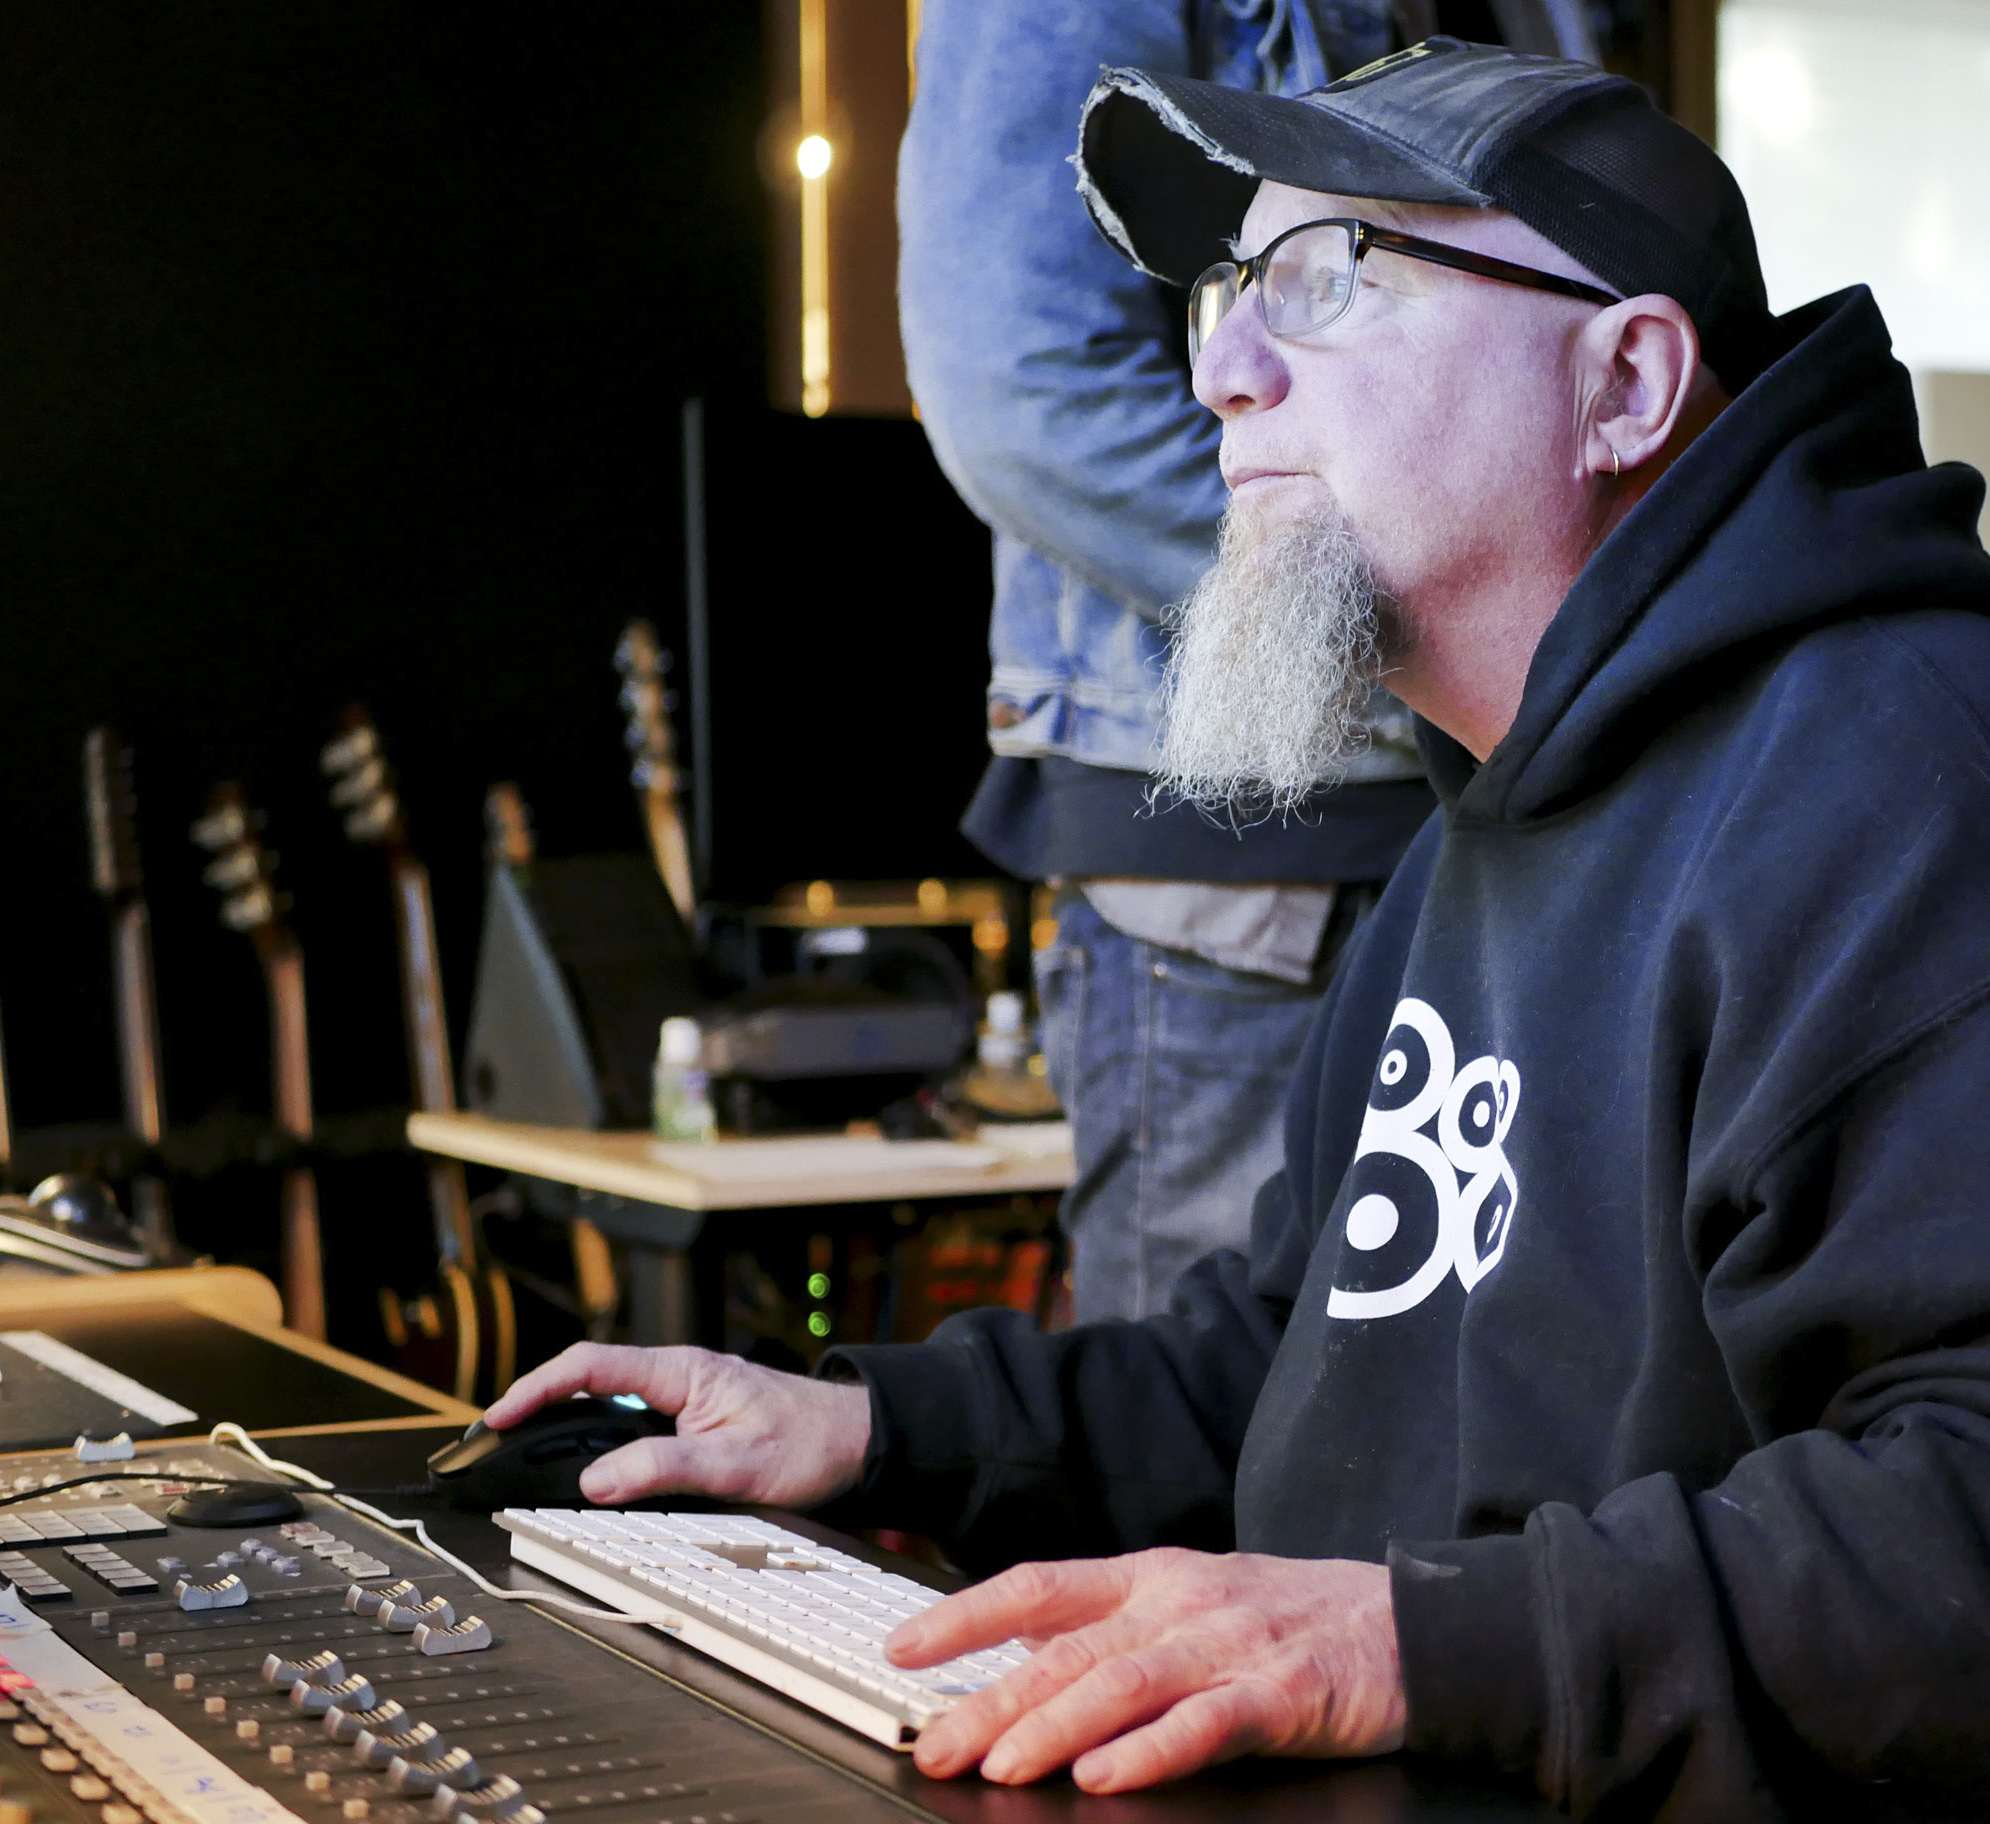 Garth Richardson at the helm on the control board